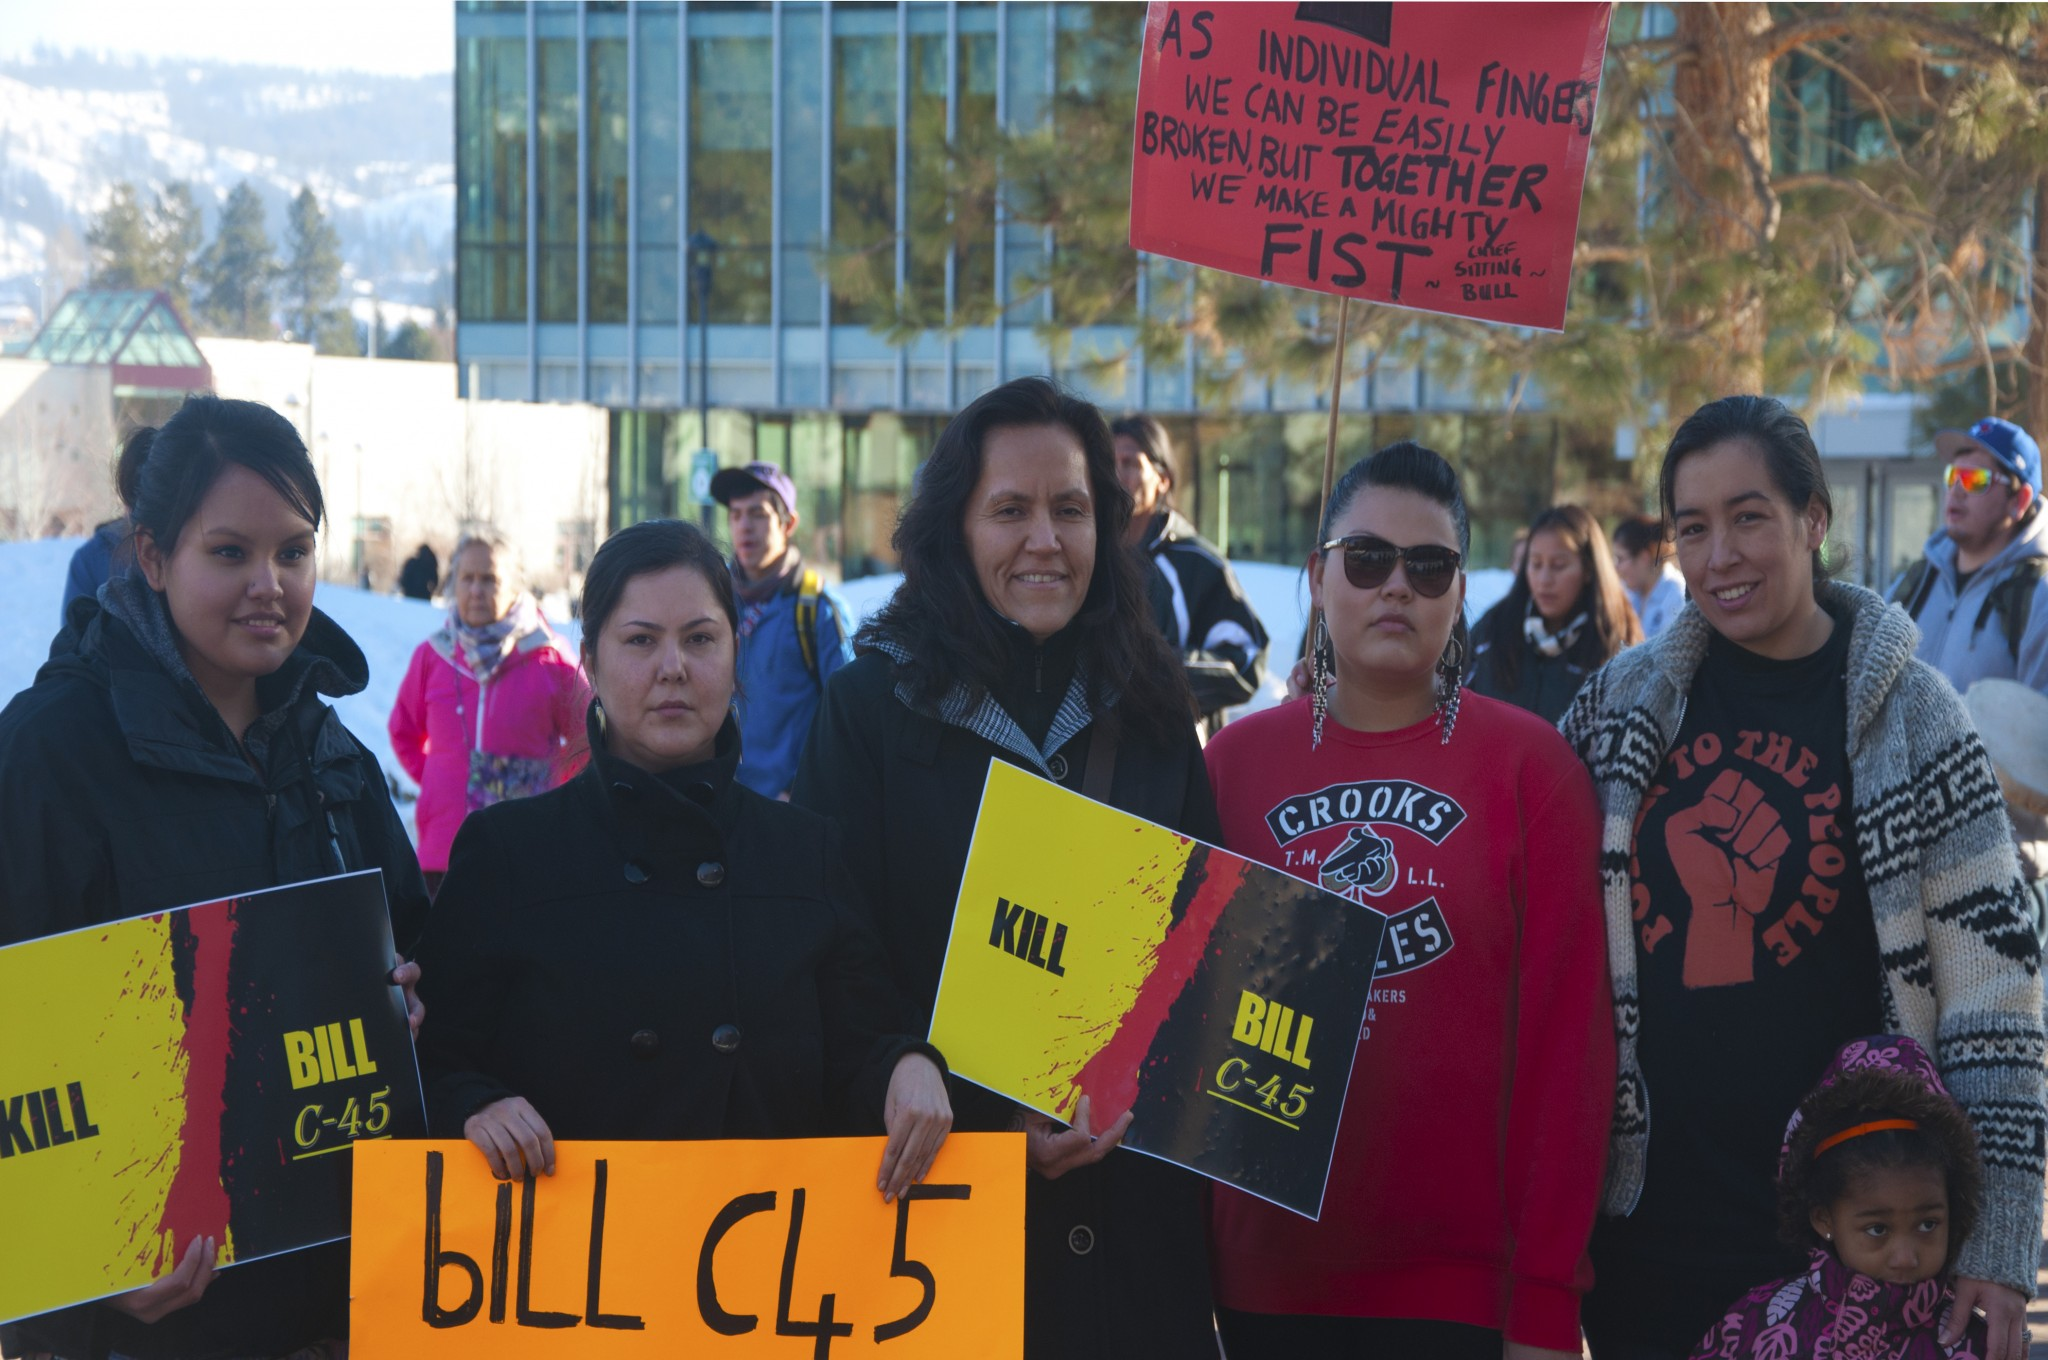 Jolene Michel, Nicole Kahoose, Rhoda Tom, Shania West, Michelle Ikwumonu and daughter pose at the Idle No More demonstration on TRU campus. - Photo by Wayne Cardinal